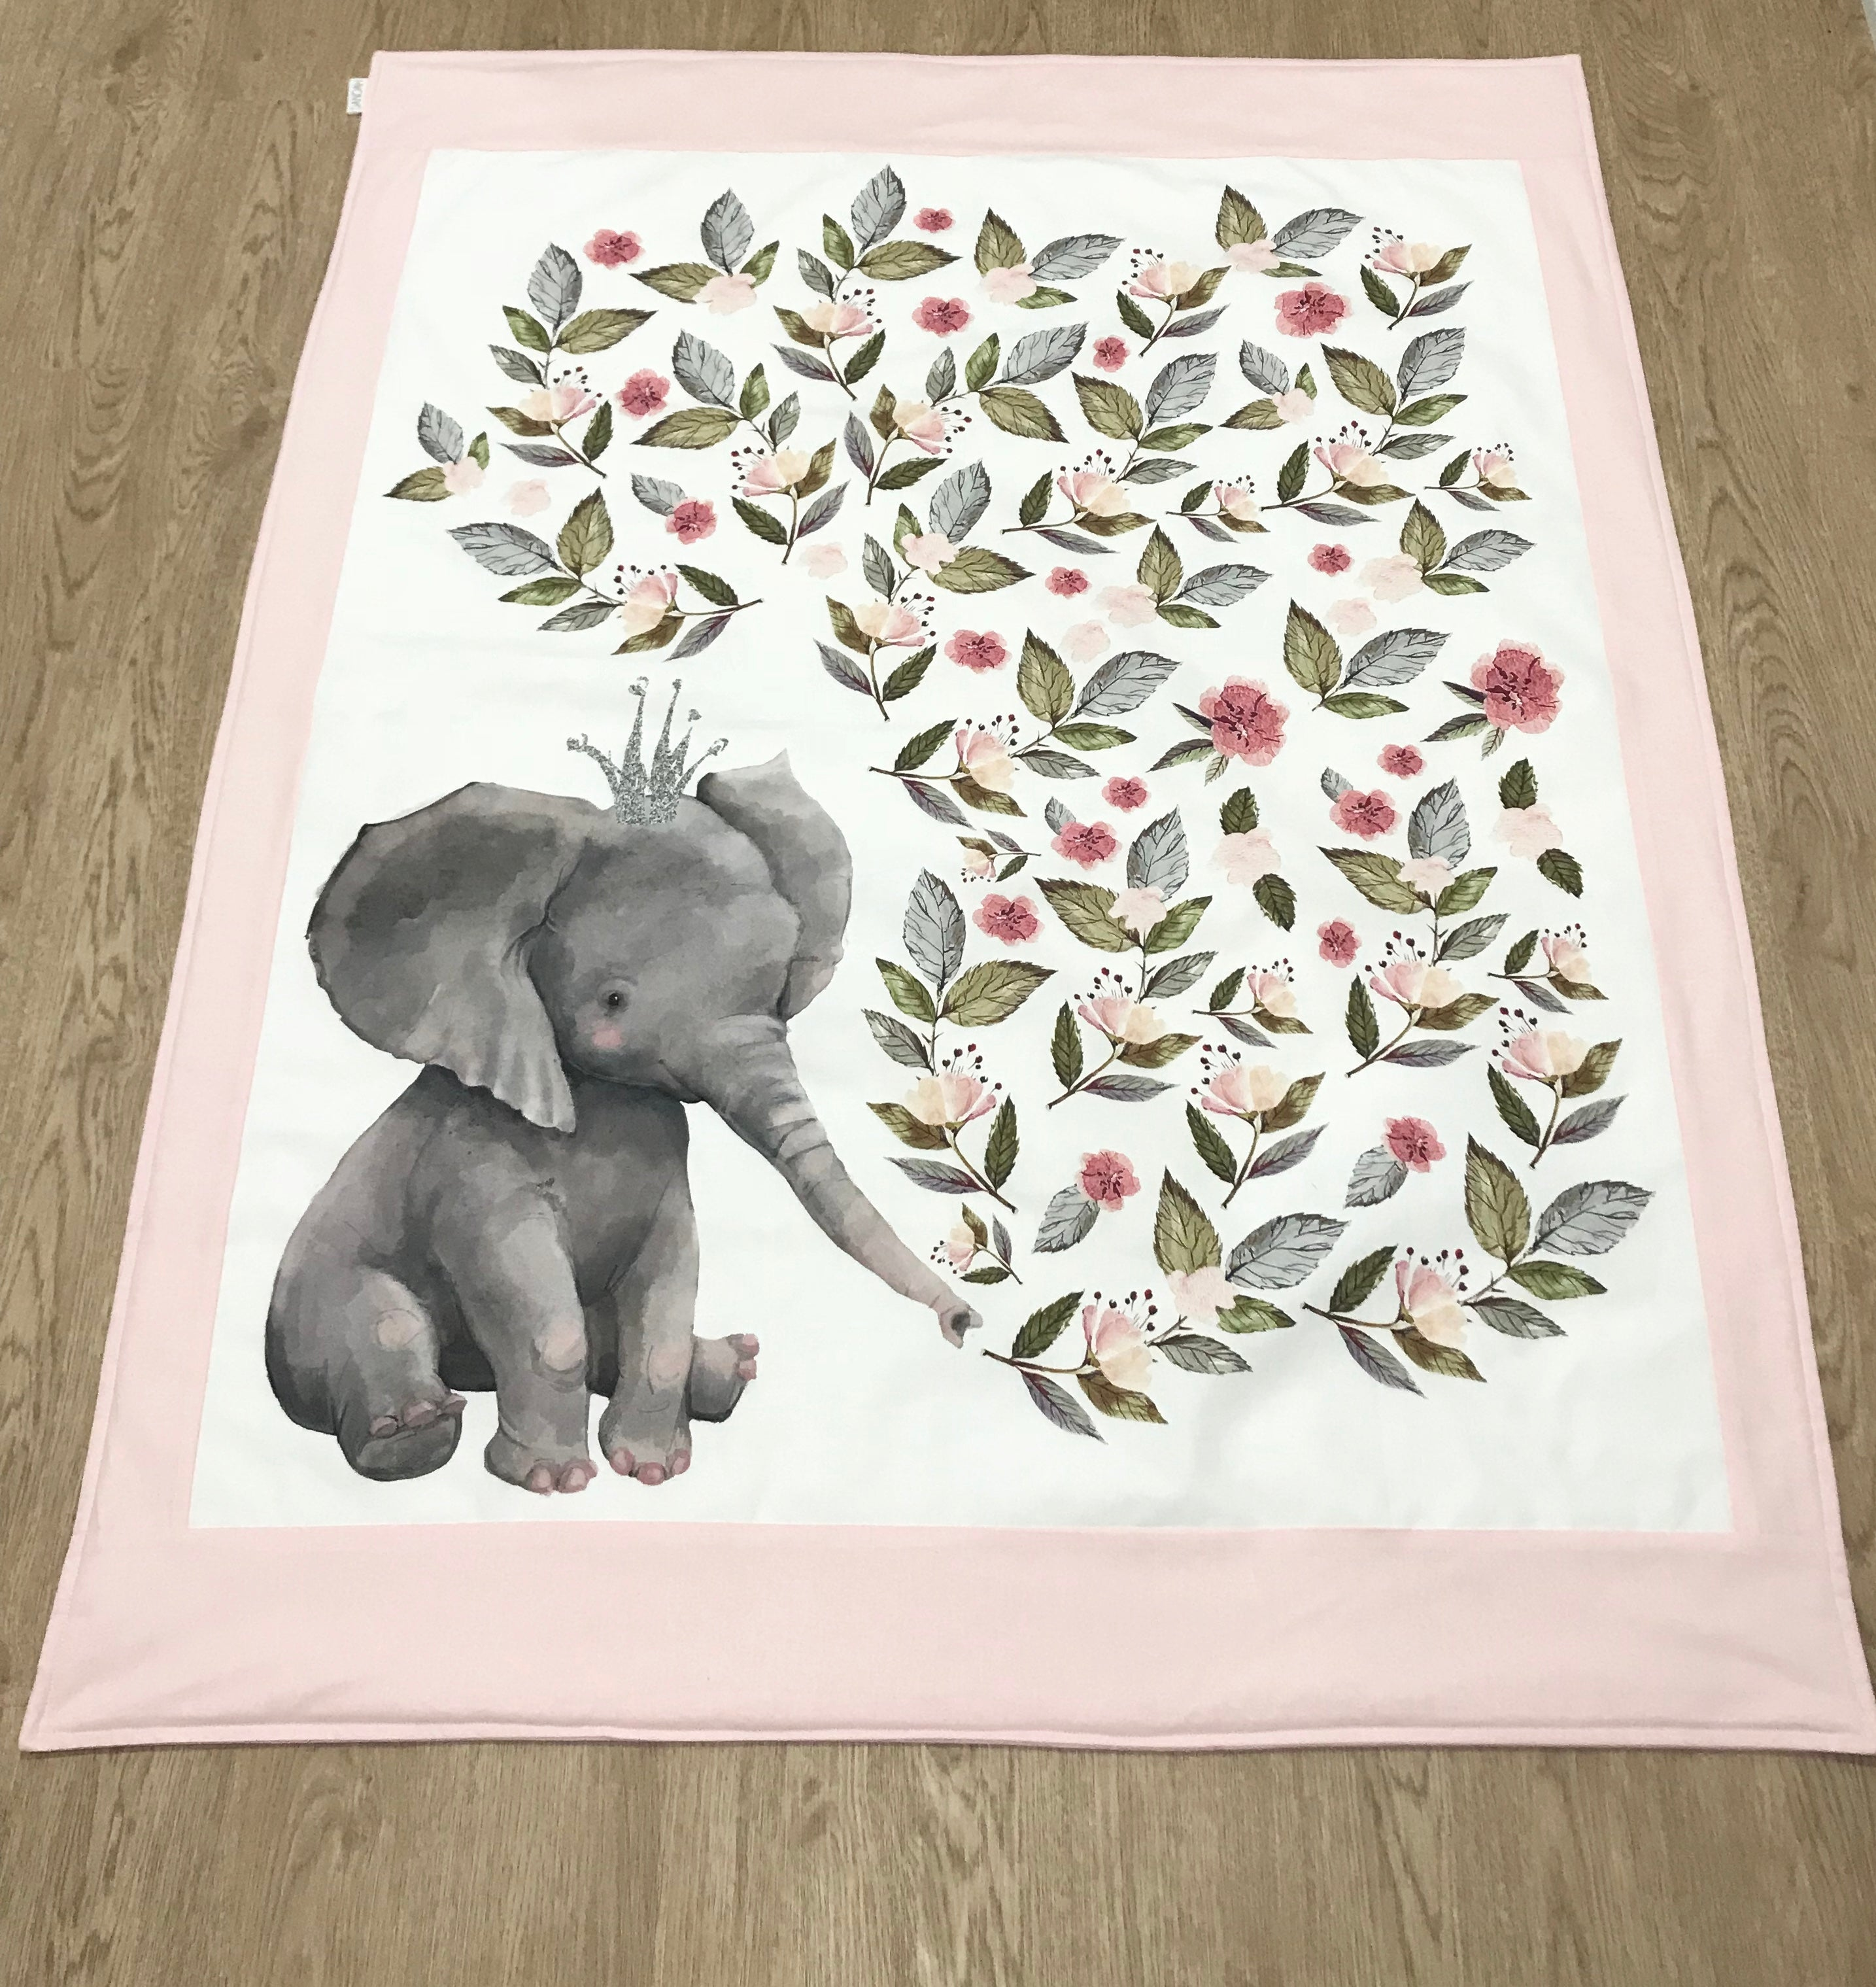 Full Collection in Pink Floral Elephant